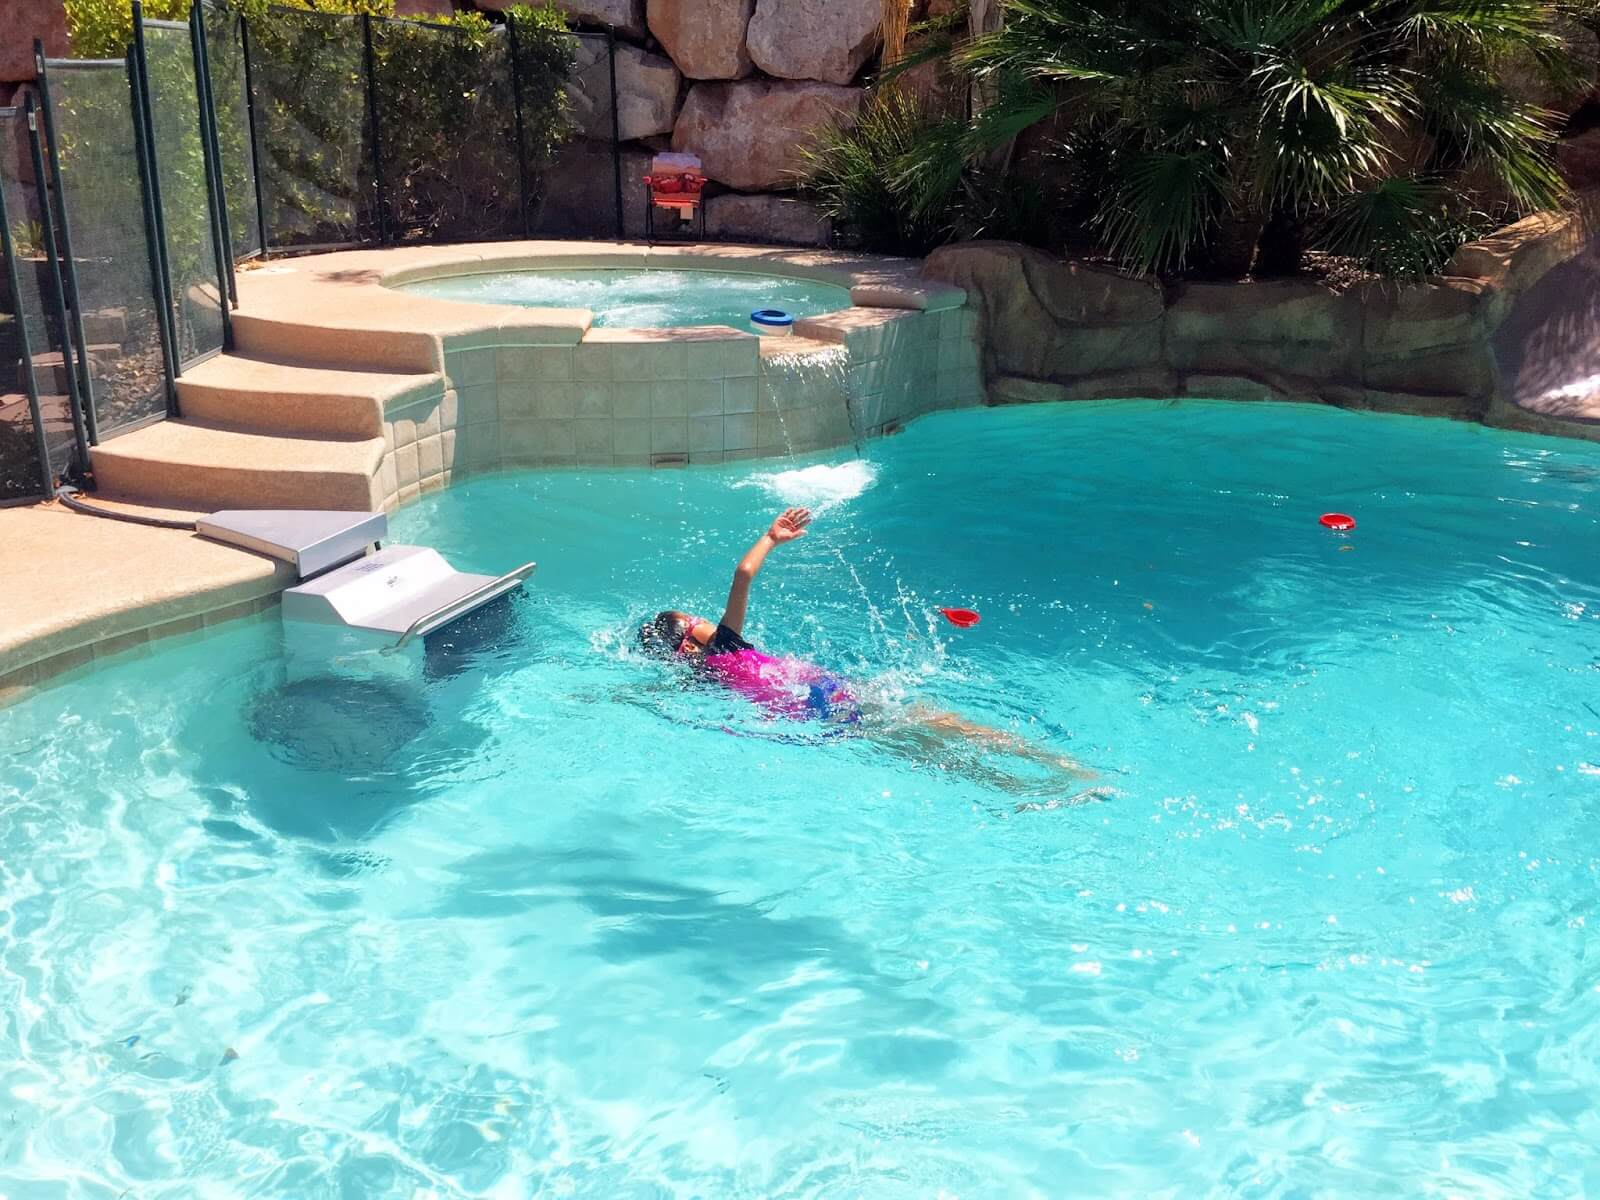 When Rod isn't triathlon training, his daughter enjoys the Endless Pools Fastlane